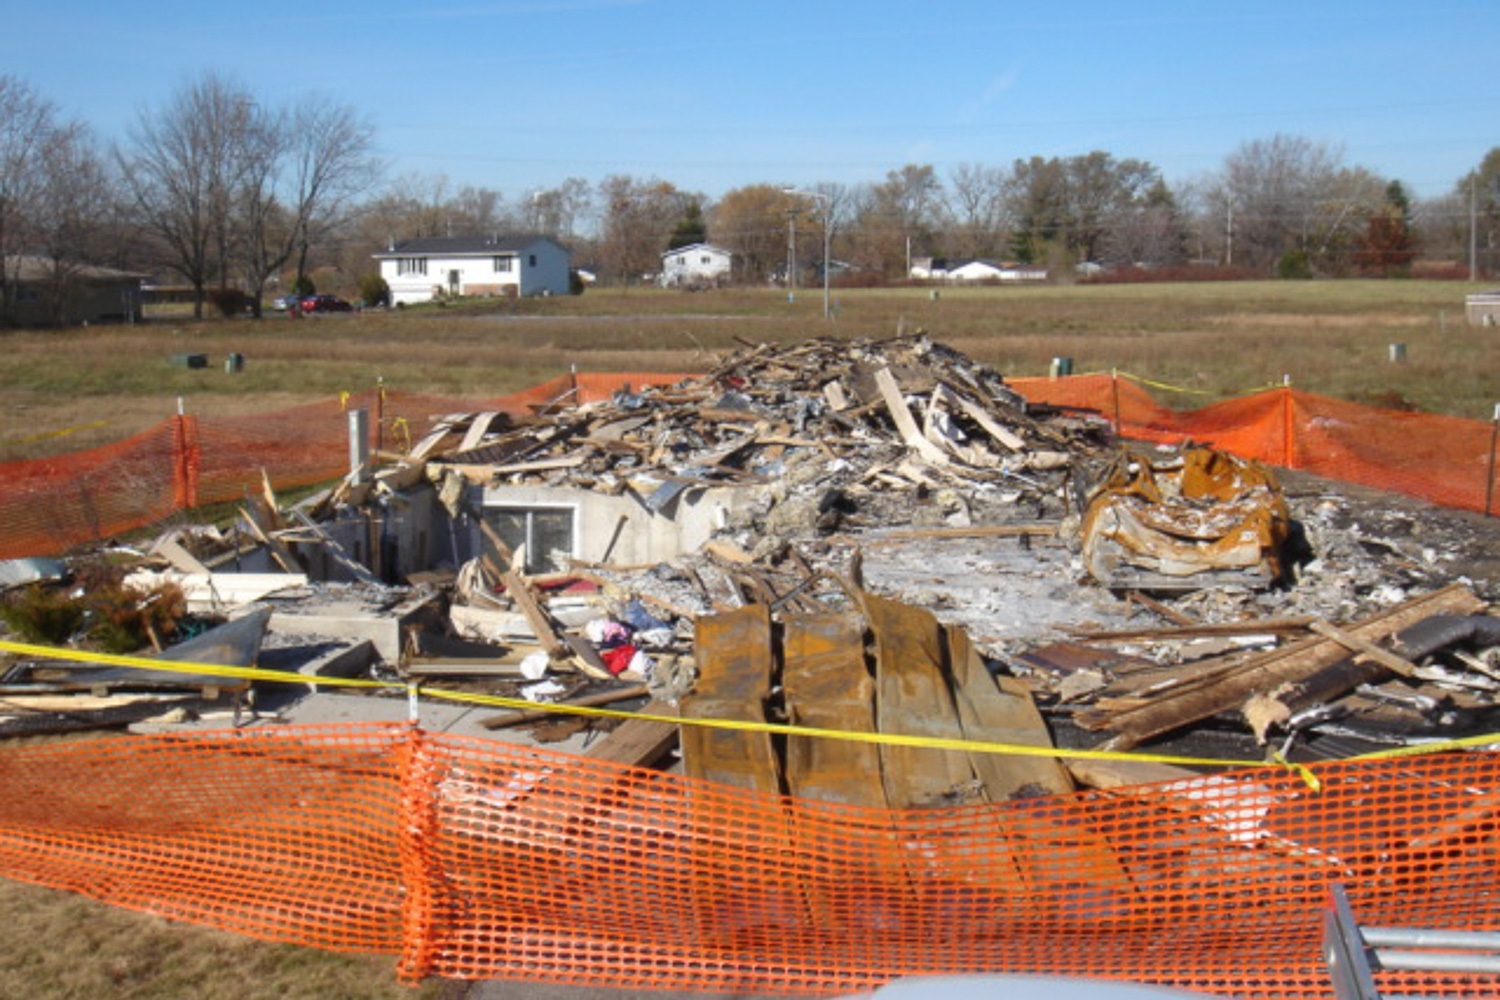 demoed house after house fire. Rubble from demoed house.